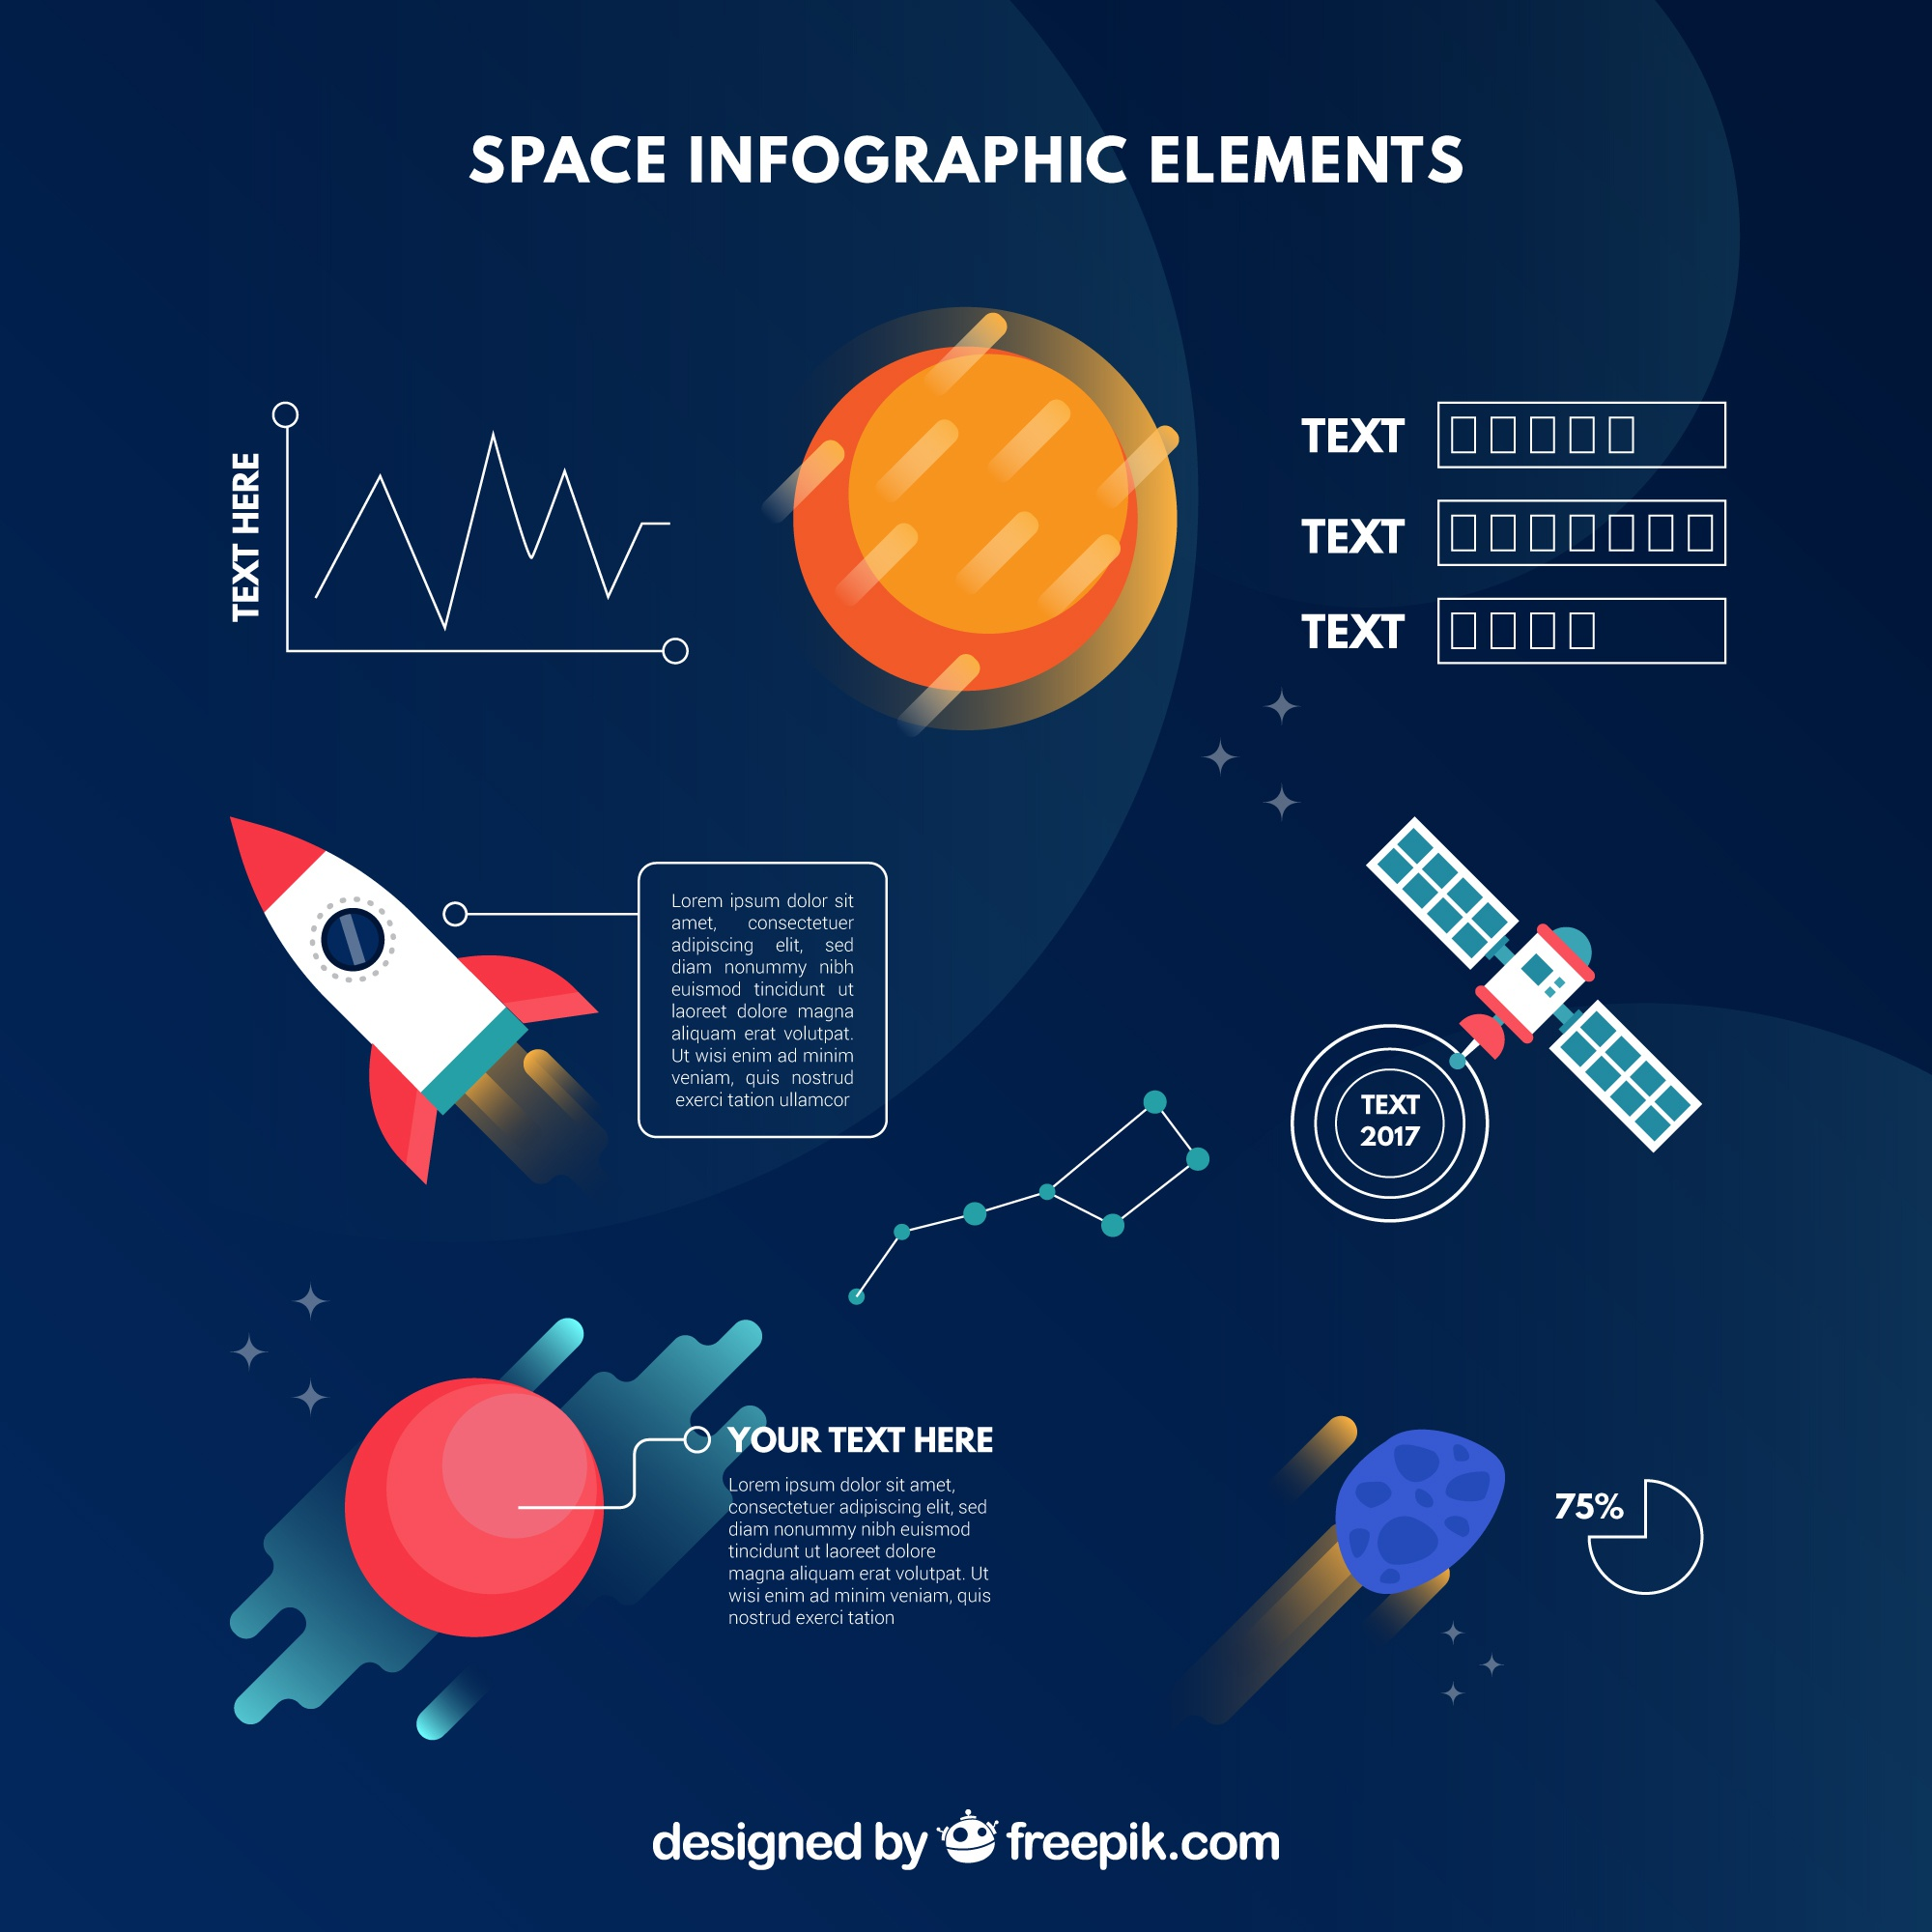 Space infographic elements